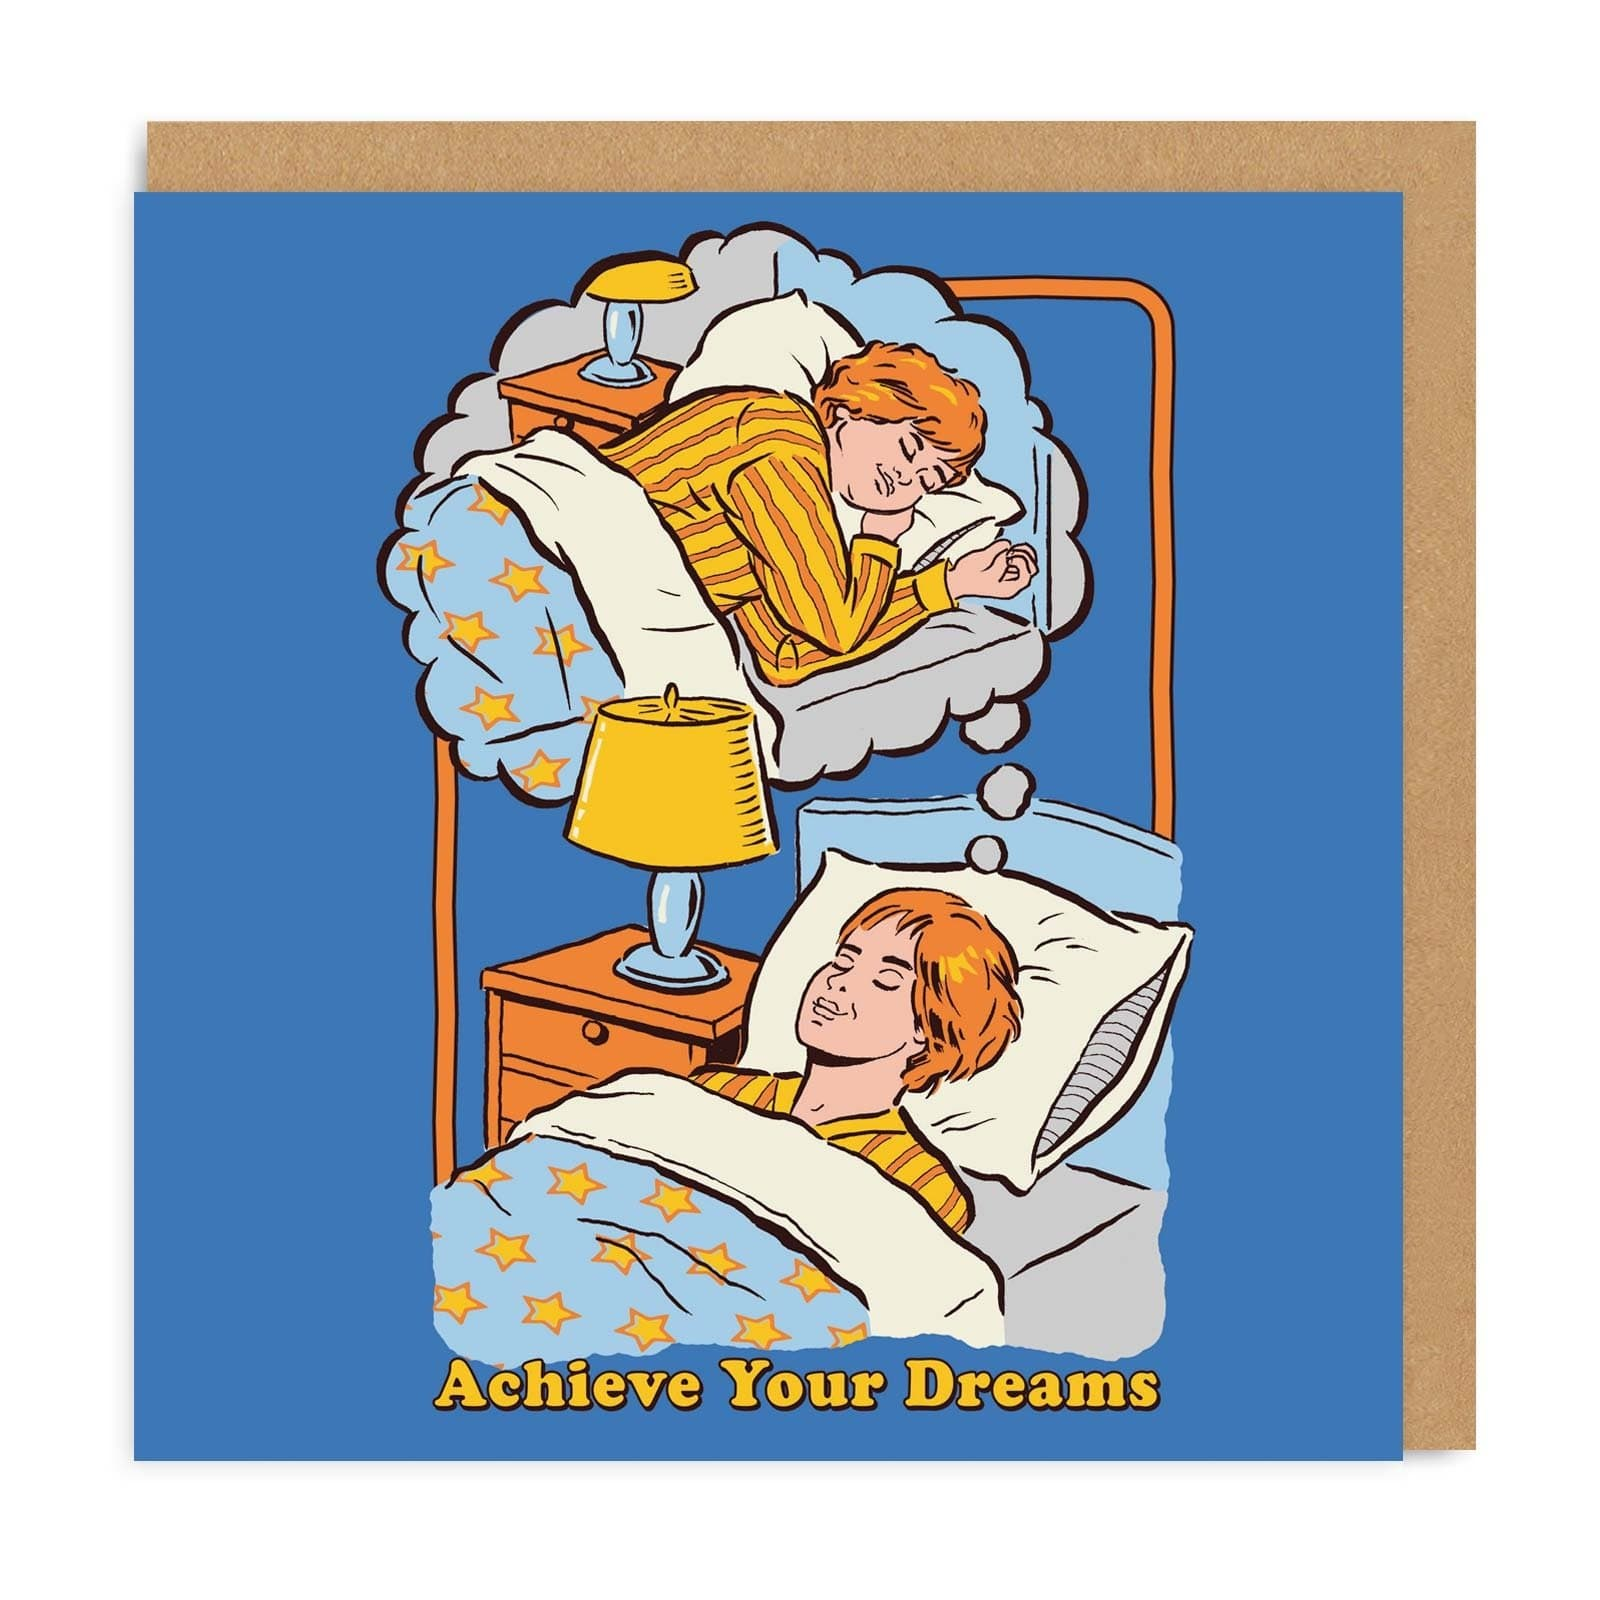 Achieve Your Dreams Square Greeting Card